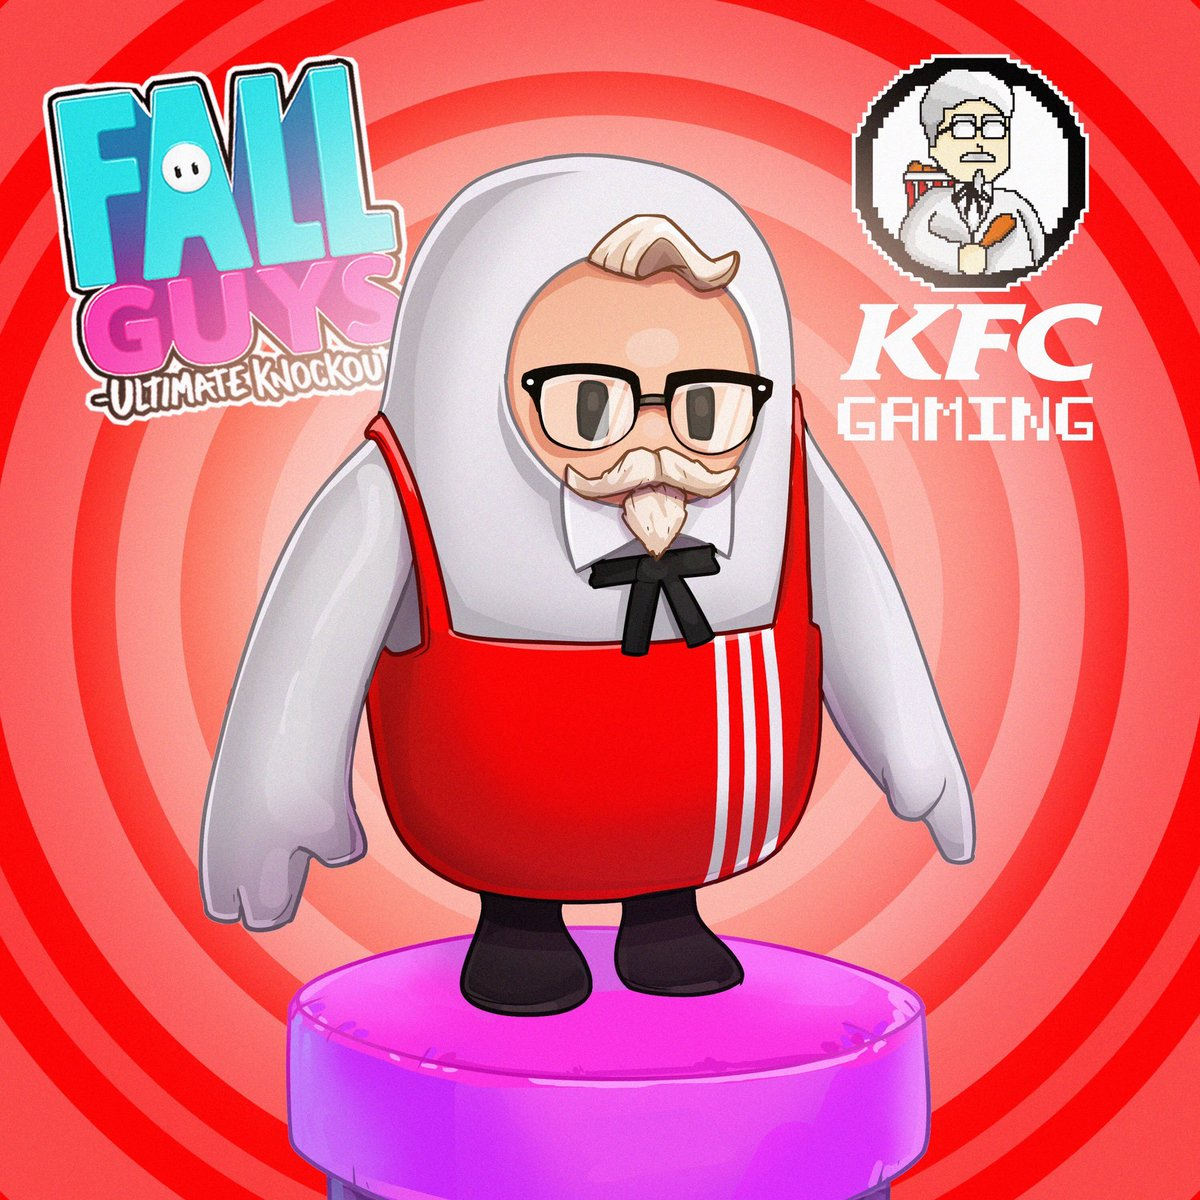 We need this skin in @FallGuysGame, Twitter do your thing